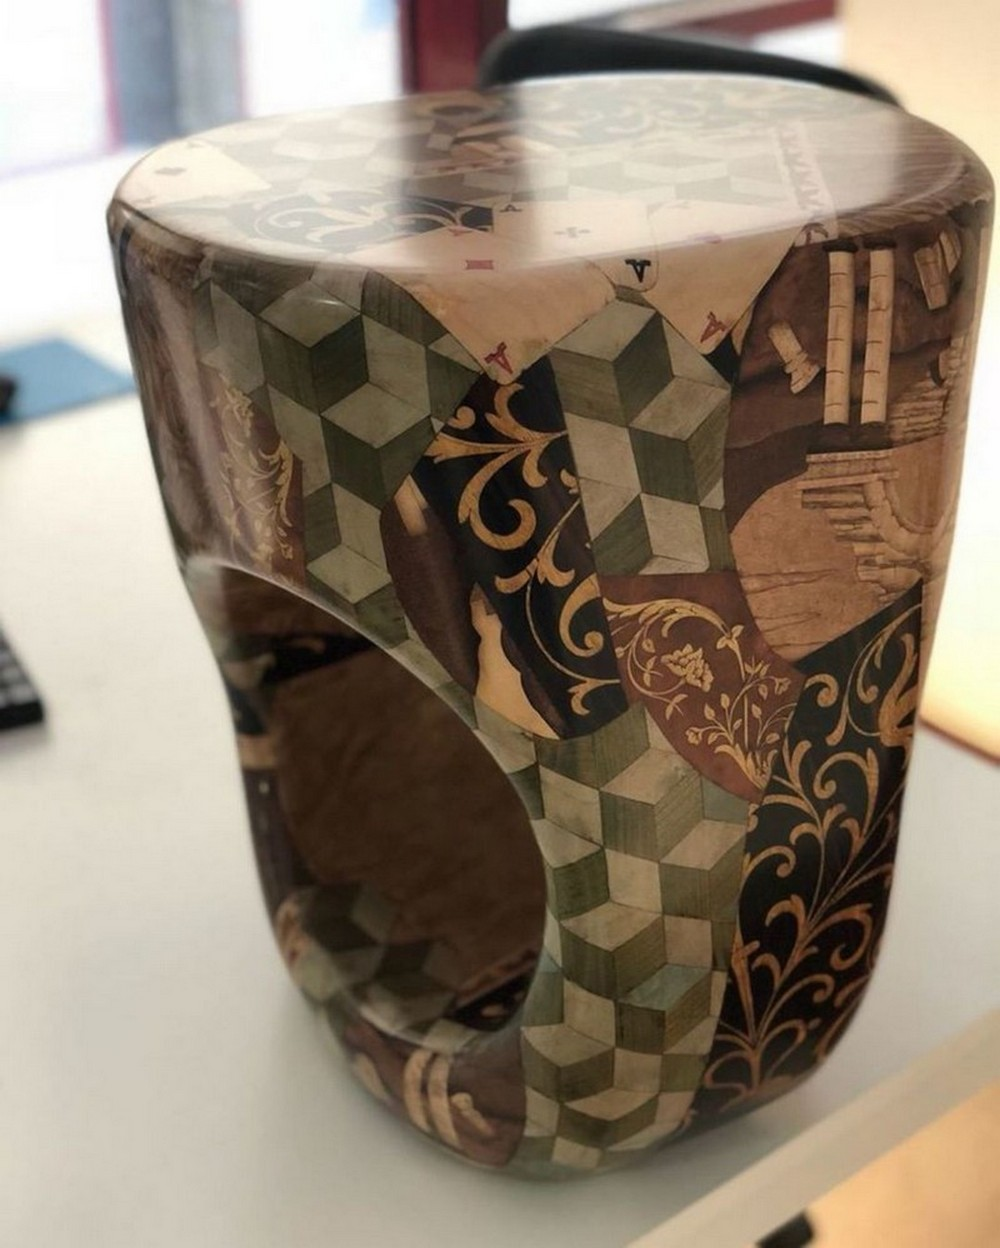 More about ArtsTool Project Culture's Series of Handcrafted Designs